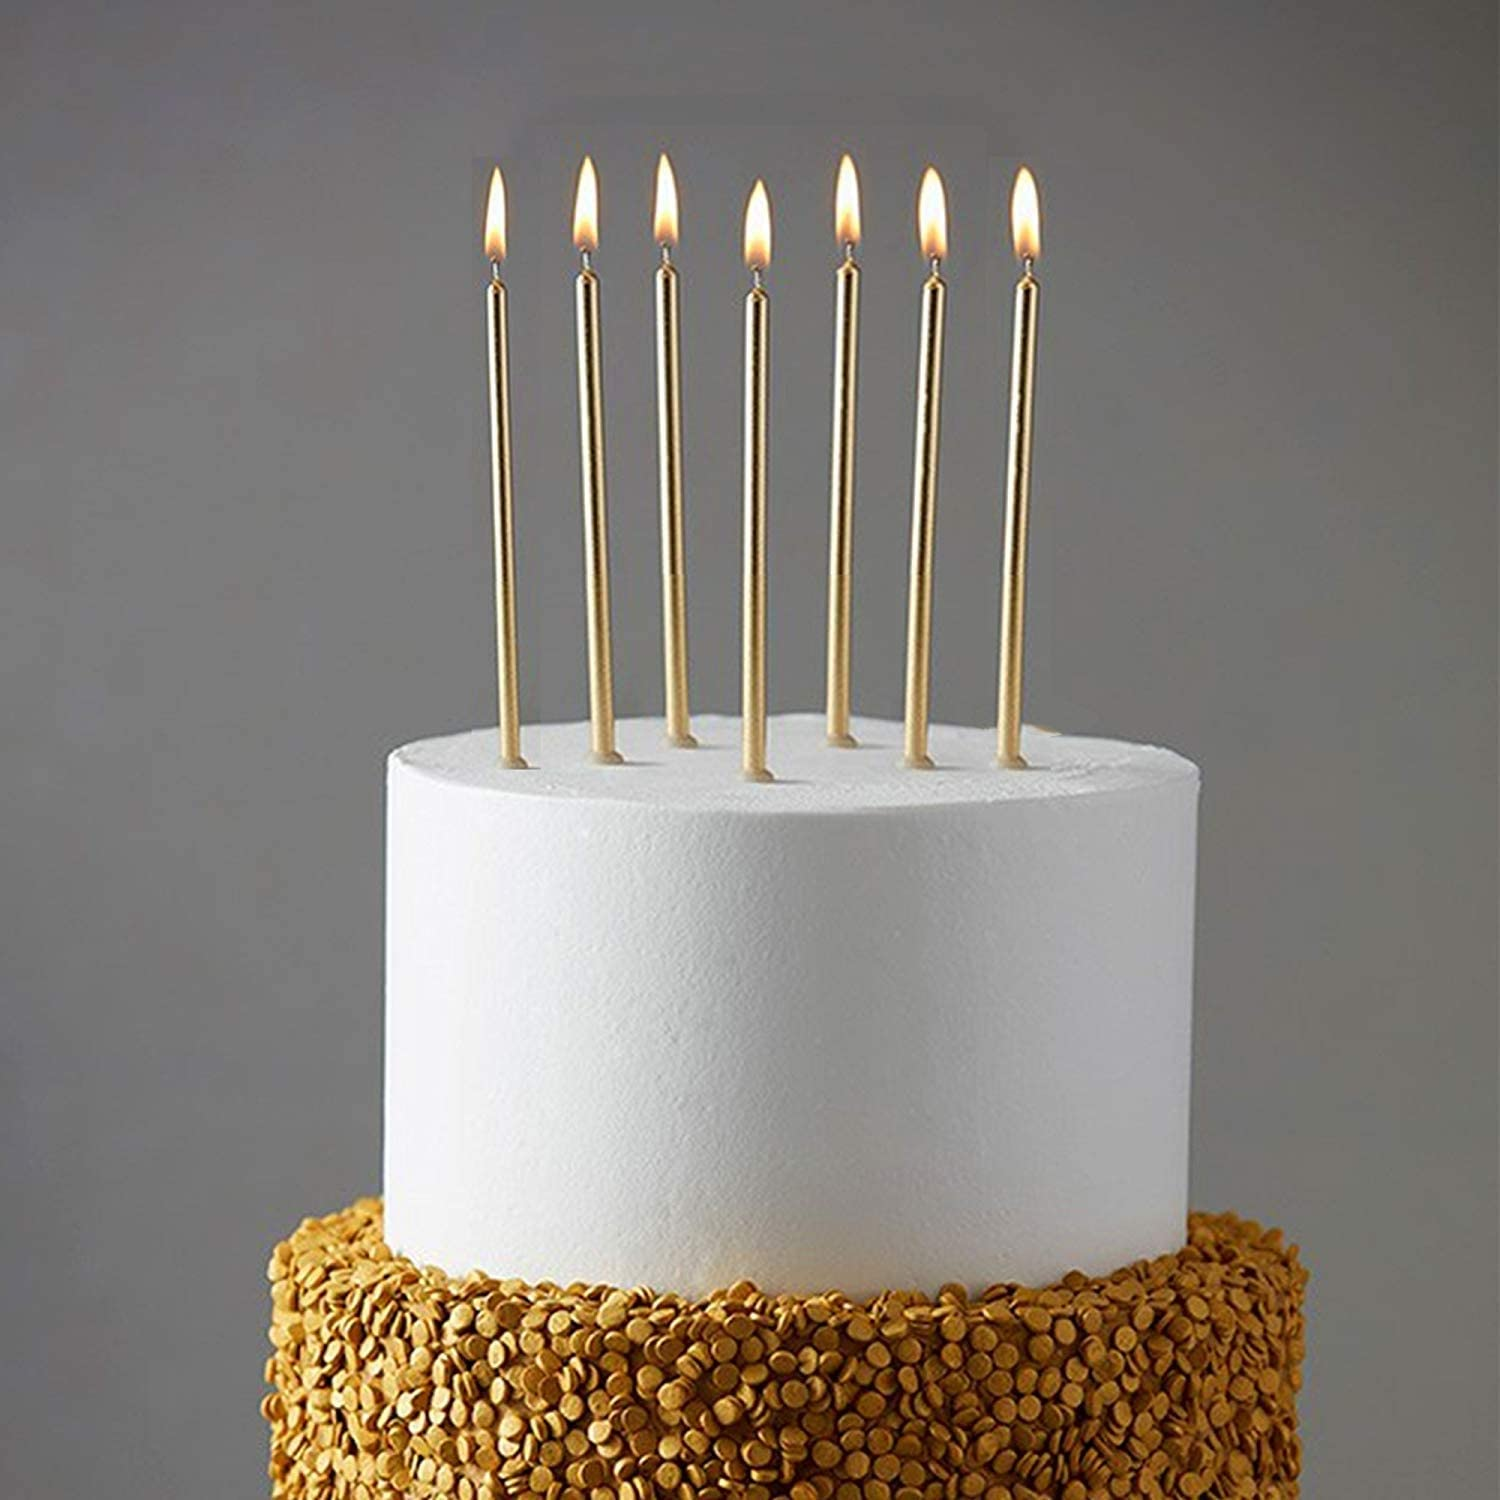 Amazon Com 24 Count Party Long Thin Cake Candles Metallic Birthday Candles In Holders For Birthday Cakes Cupcake Champagne Gold Home Kitchen